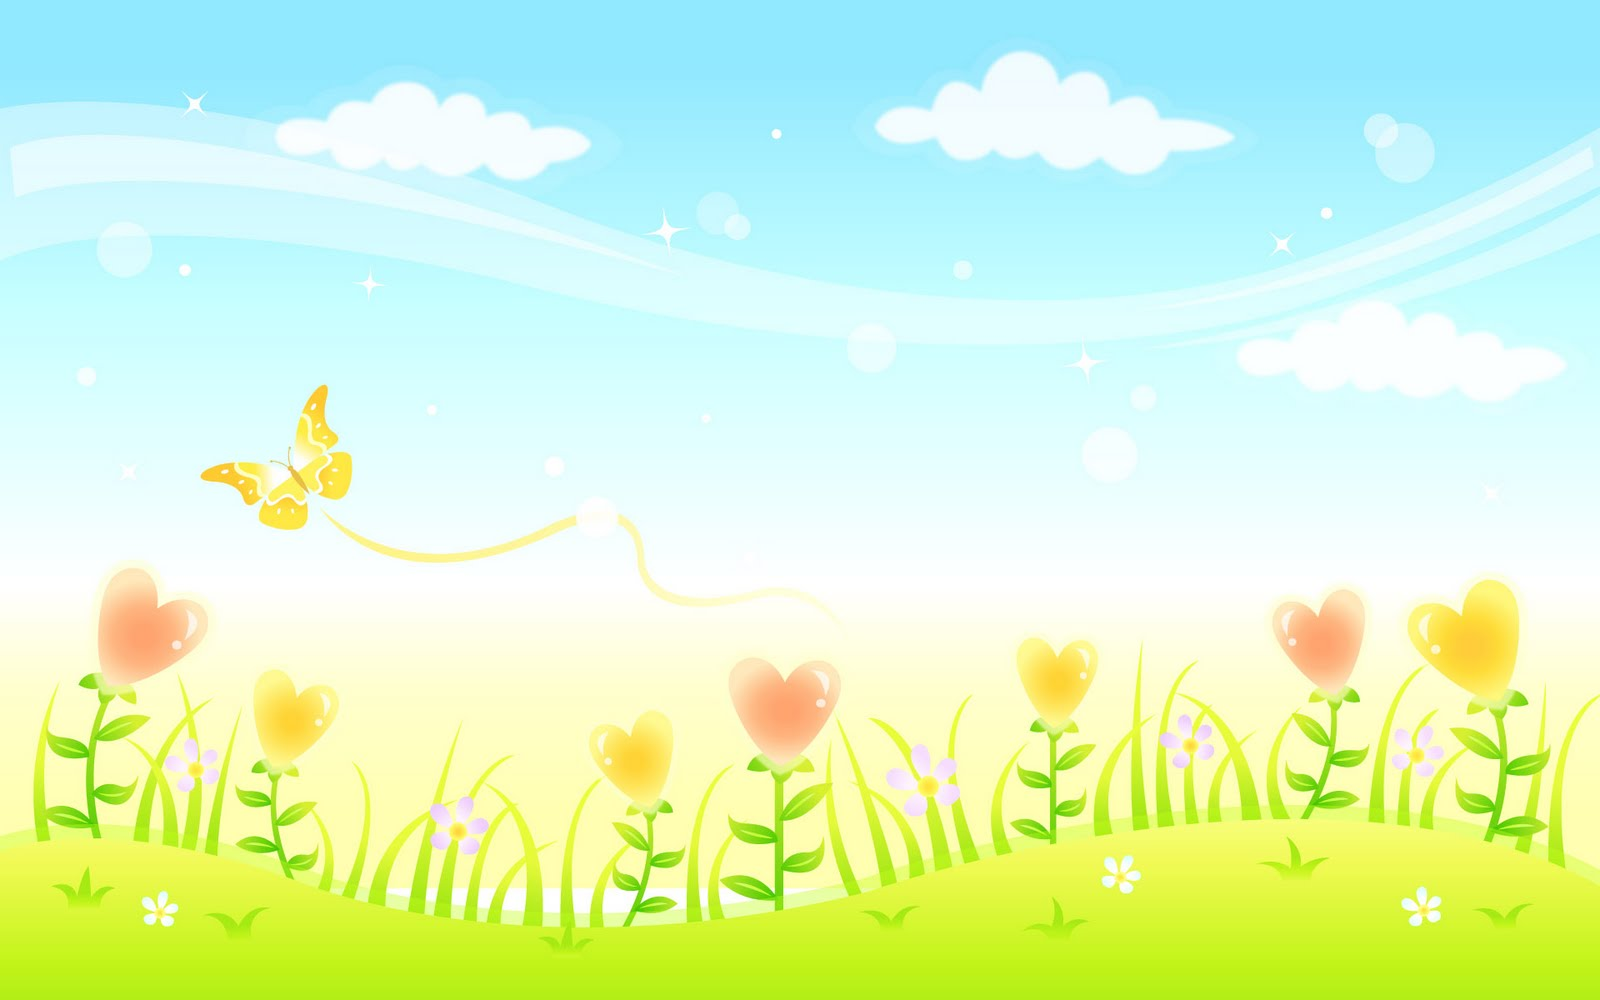 Animated Nature Flower PPT Backgrounds